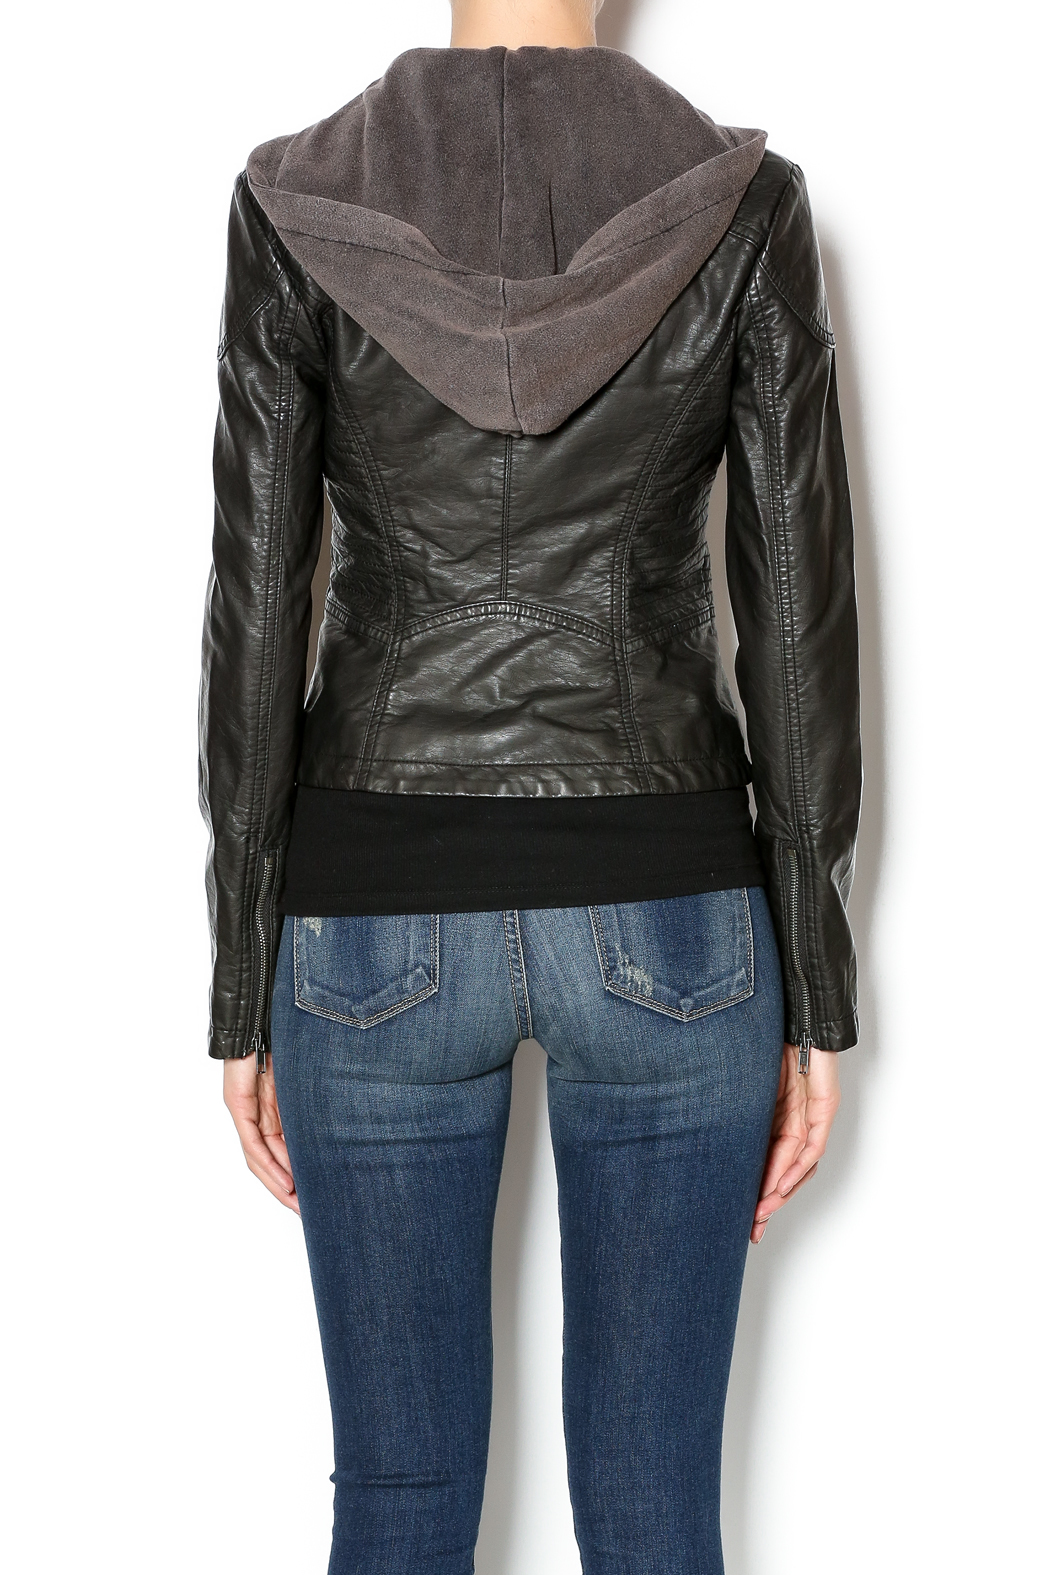 Free People Vegan Leather Jacket - Back Cropped Image